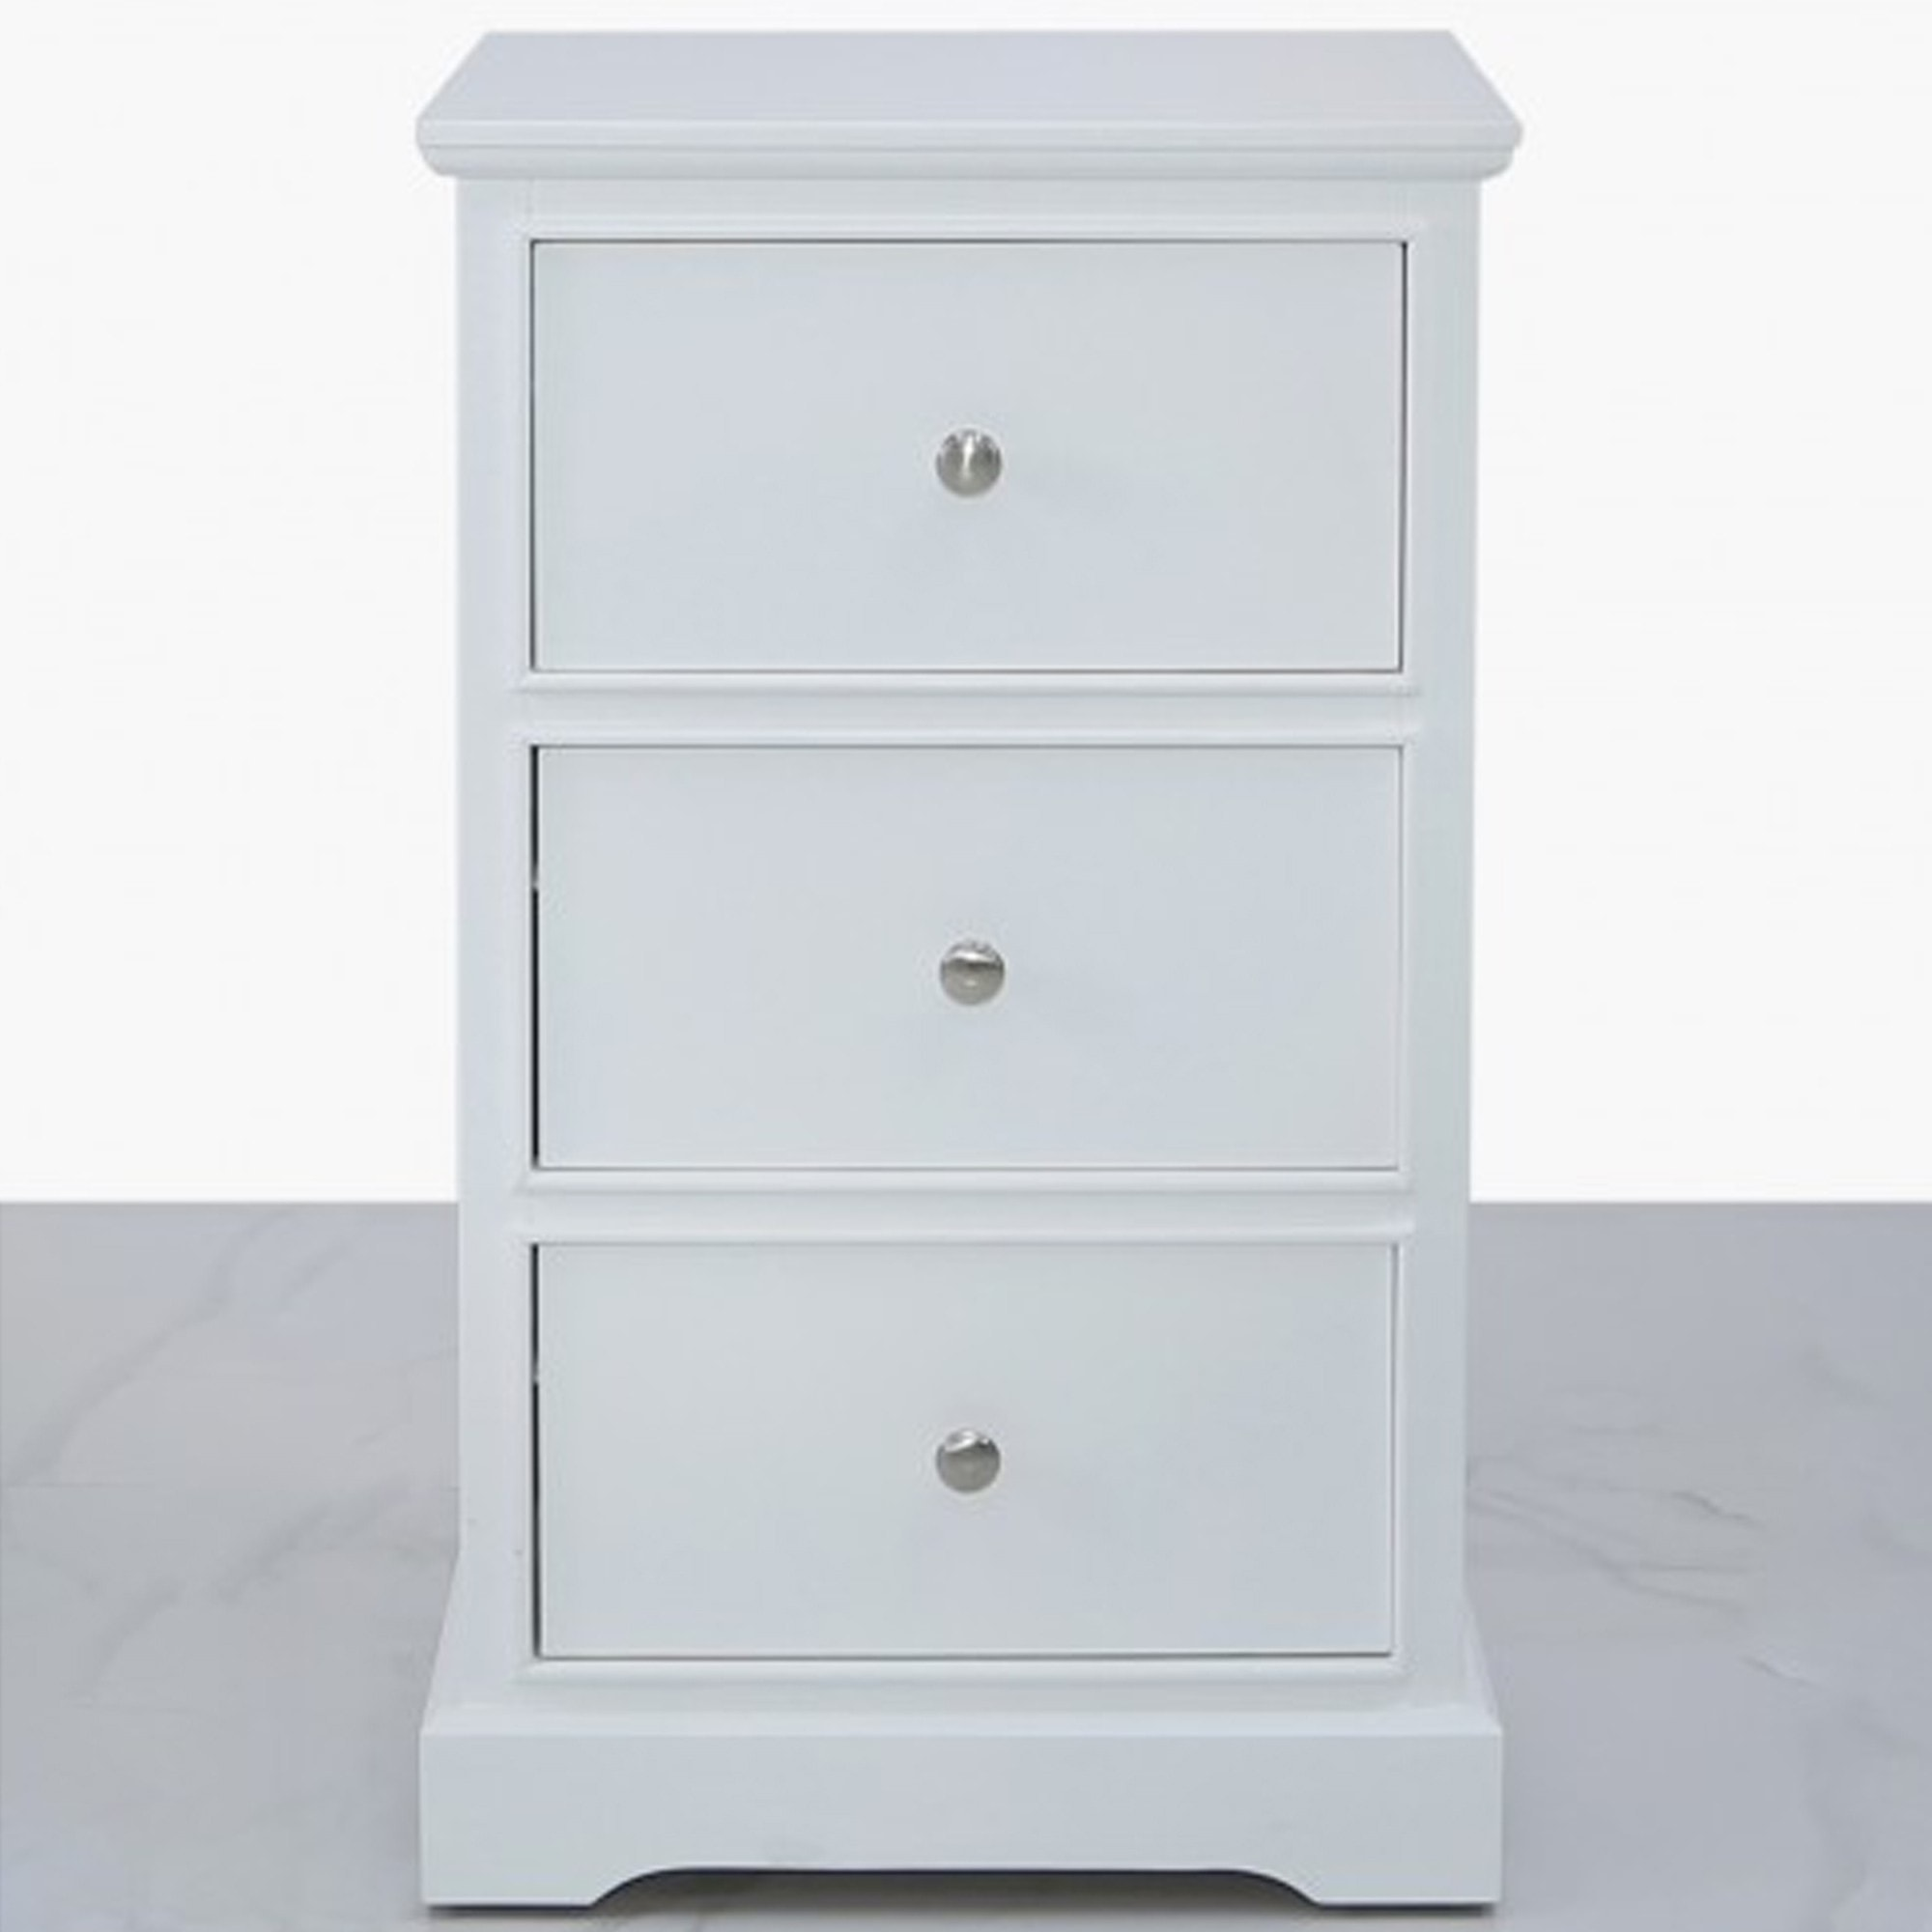 Picture of: Delta White 3 Drawer Bedside Cabinet White Wooden Bedside Cabinet